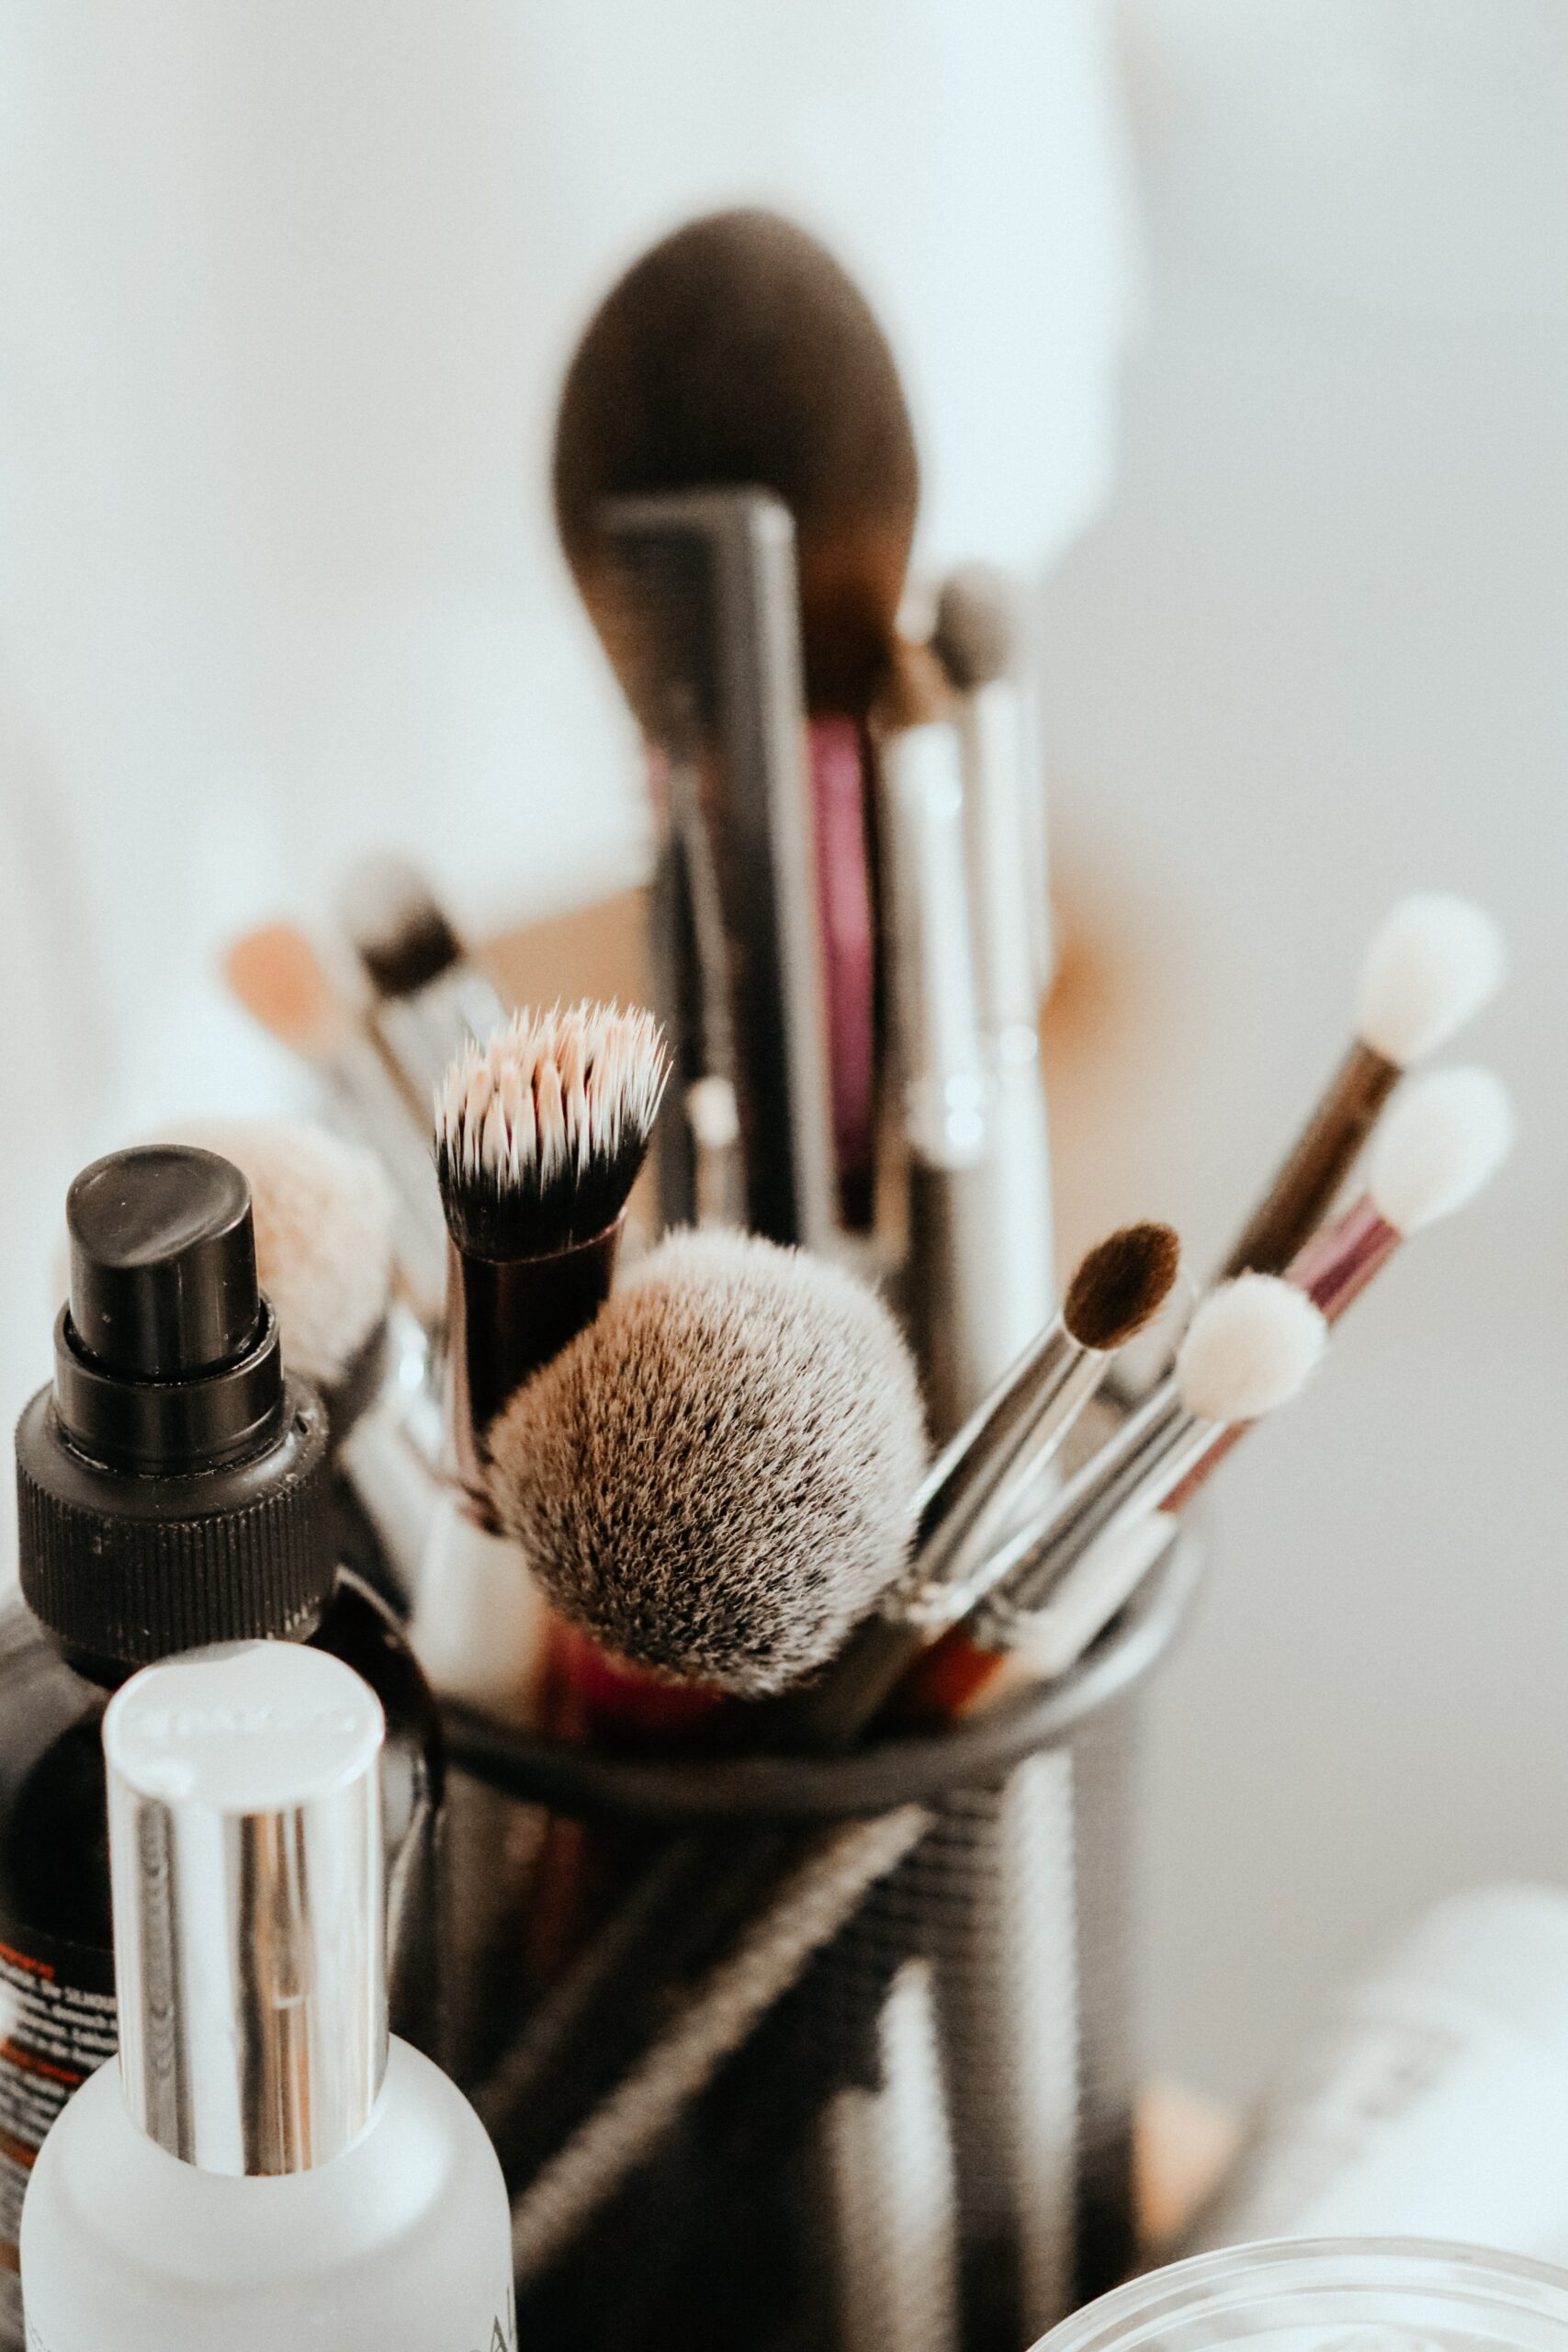 Make up brushes, eyeshadow brushes and make up accessories